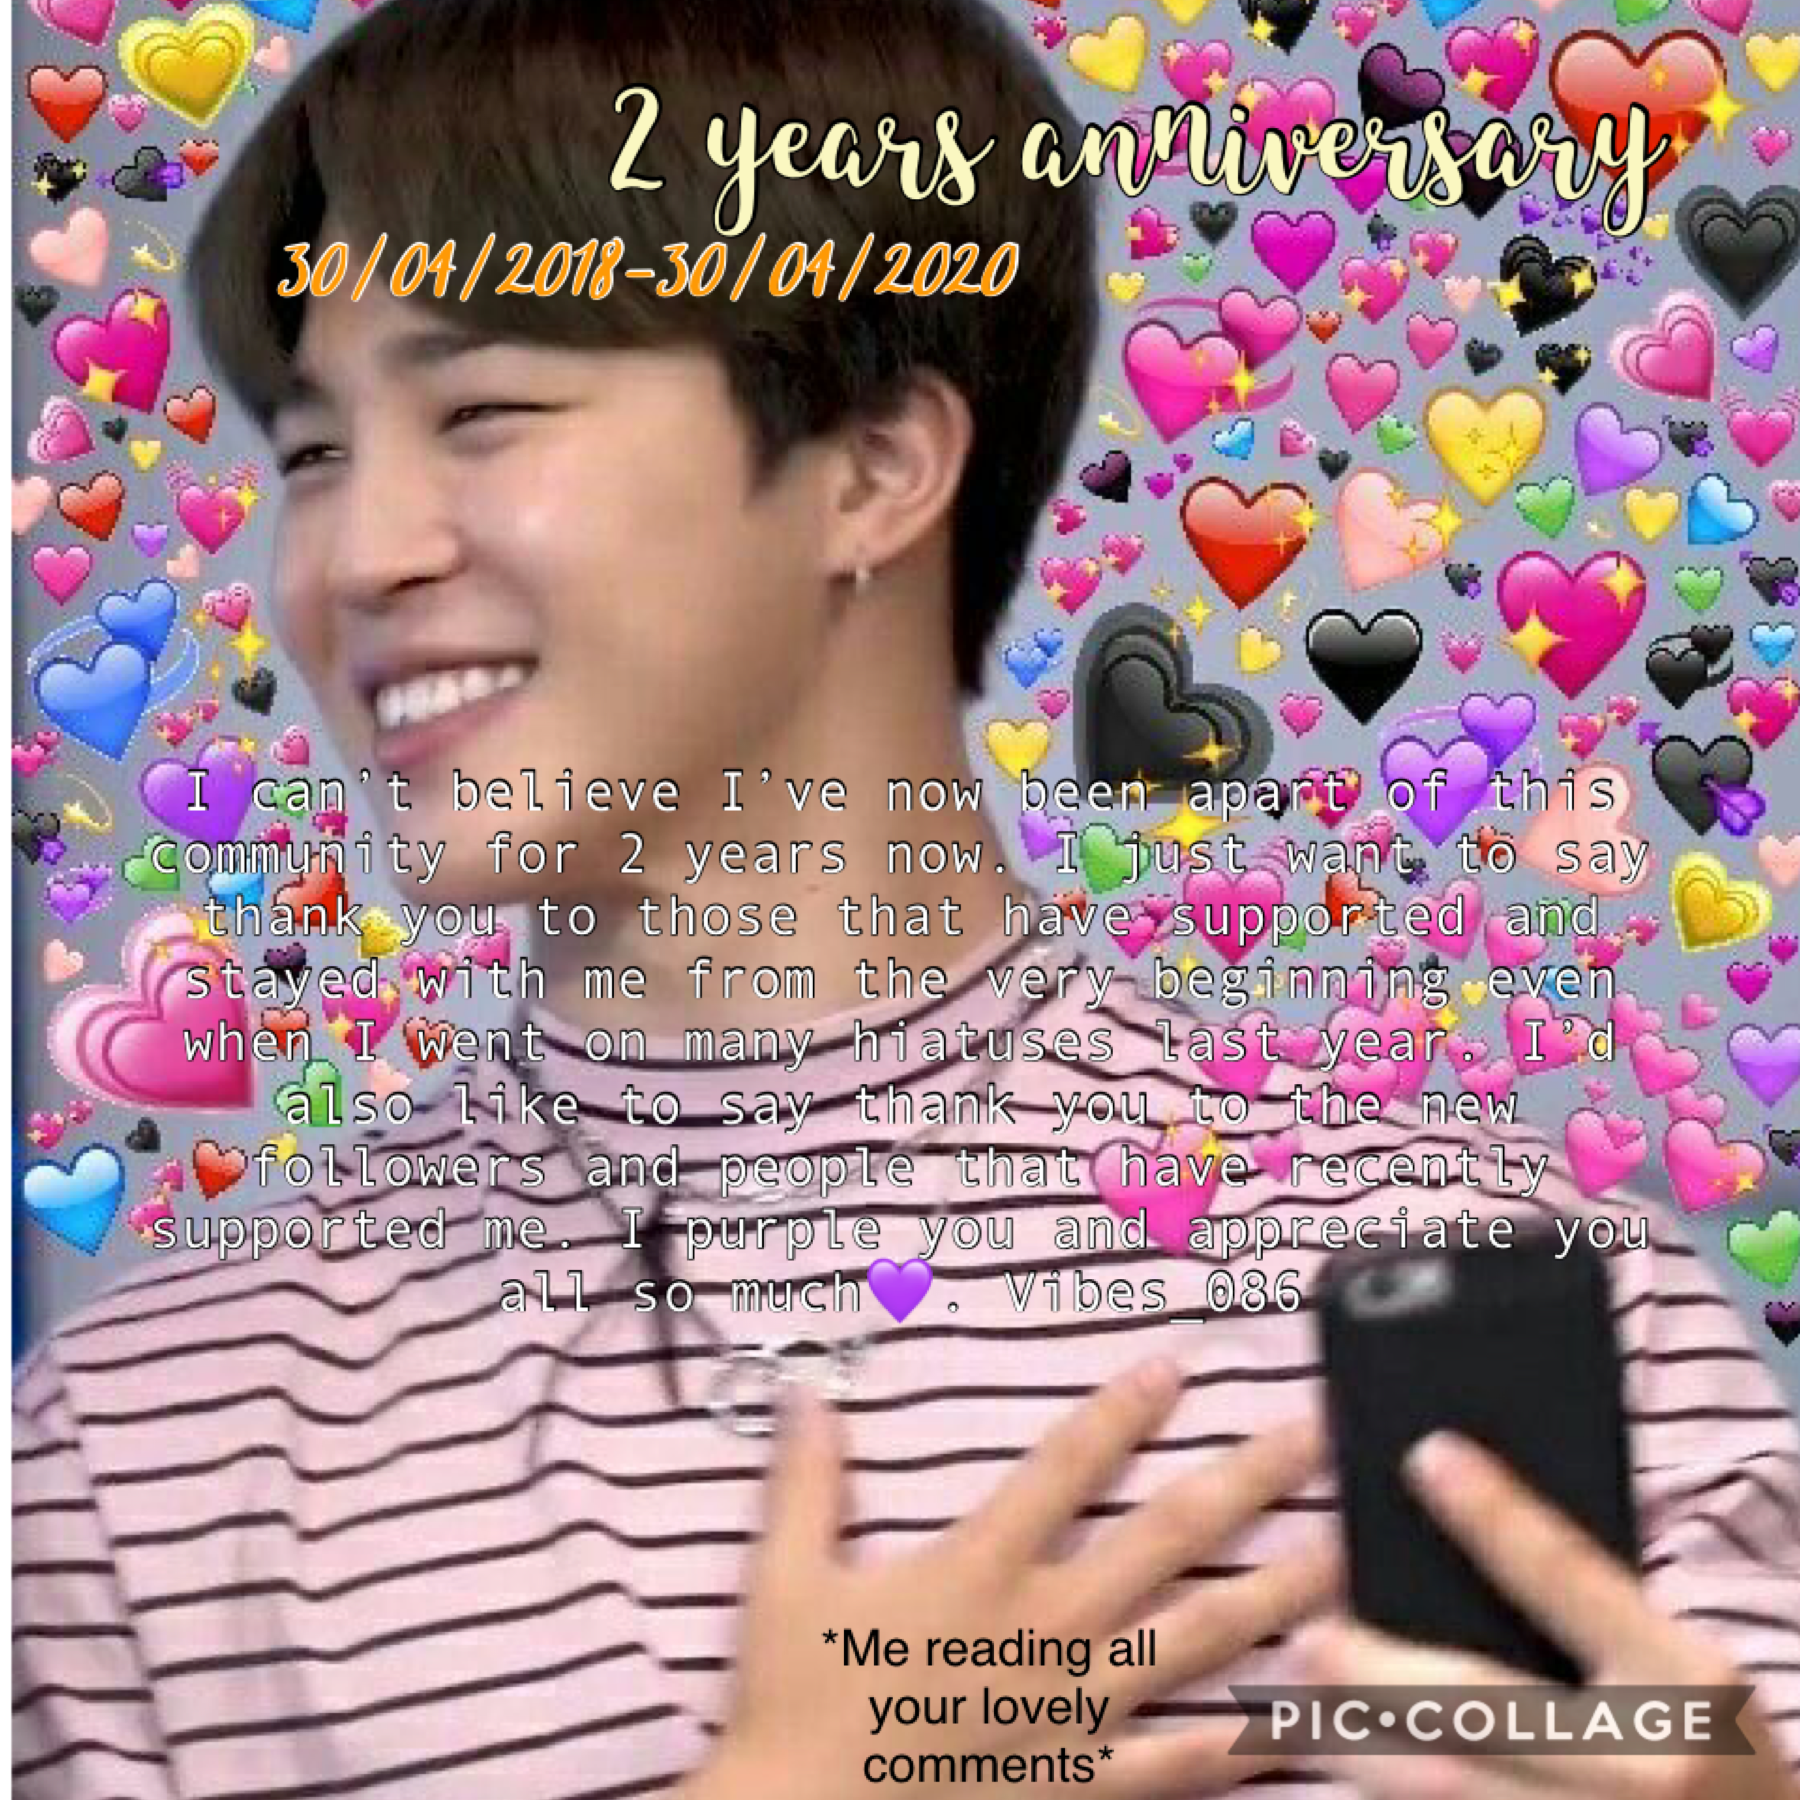 ~💜~ Thank you from the bottom of my heart for all the support over the last 2 years I appreciate you all so much 🥺💜